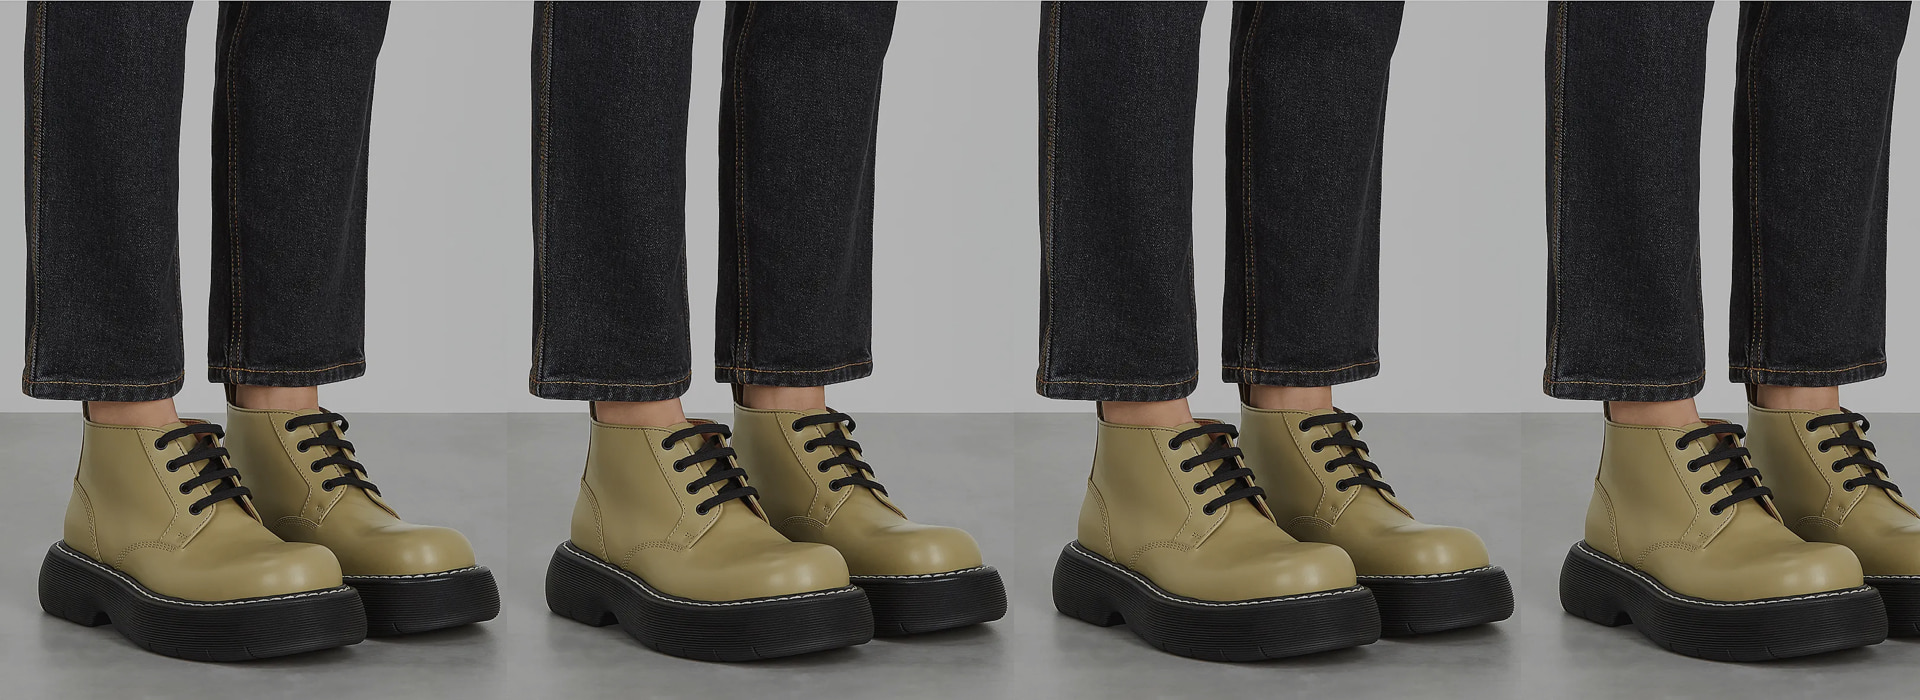 Daniel Lee's Bottega Veneta makes it big with the new FW20 Chunky Leather Boots.